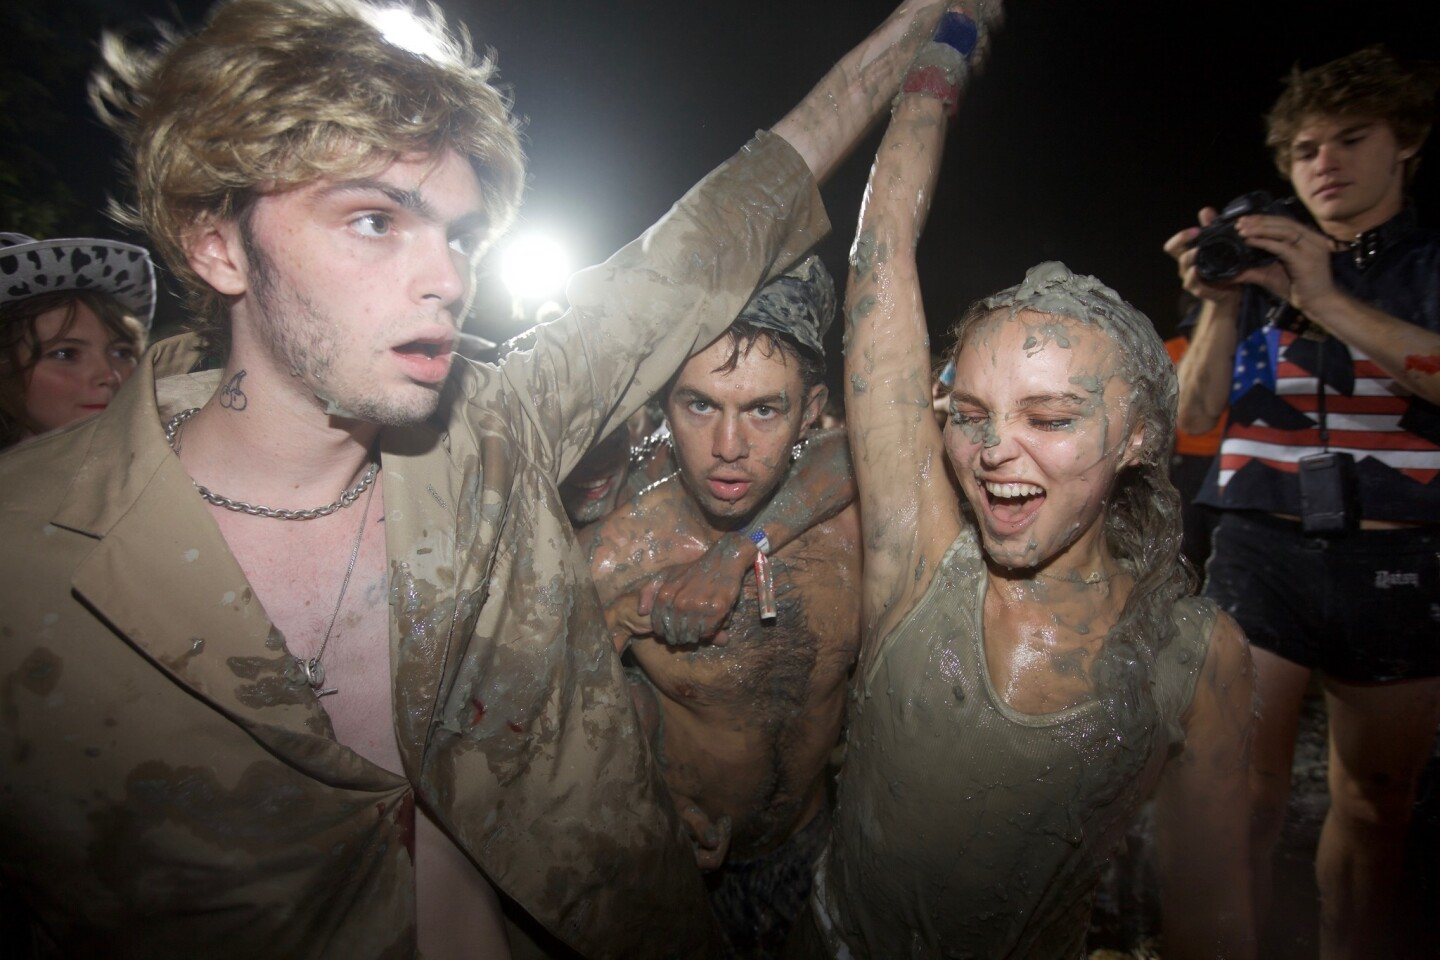 Lily-Rose Deppm, right, celebrates Aug. 3 at the Great American Mud Wrestle event in Sun Valley.